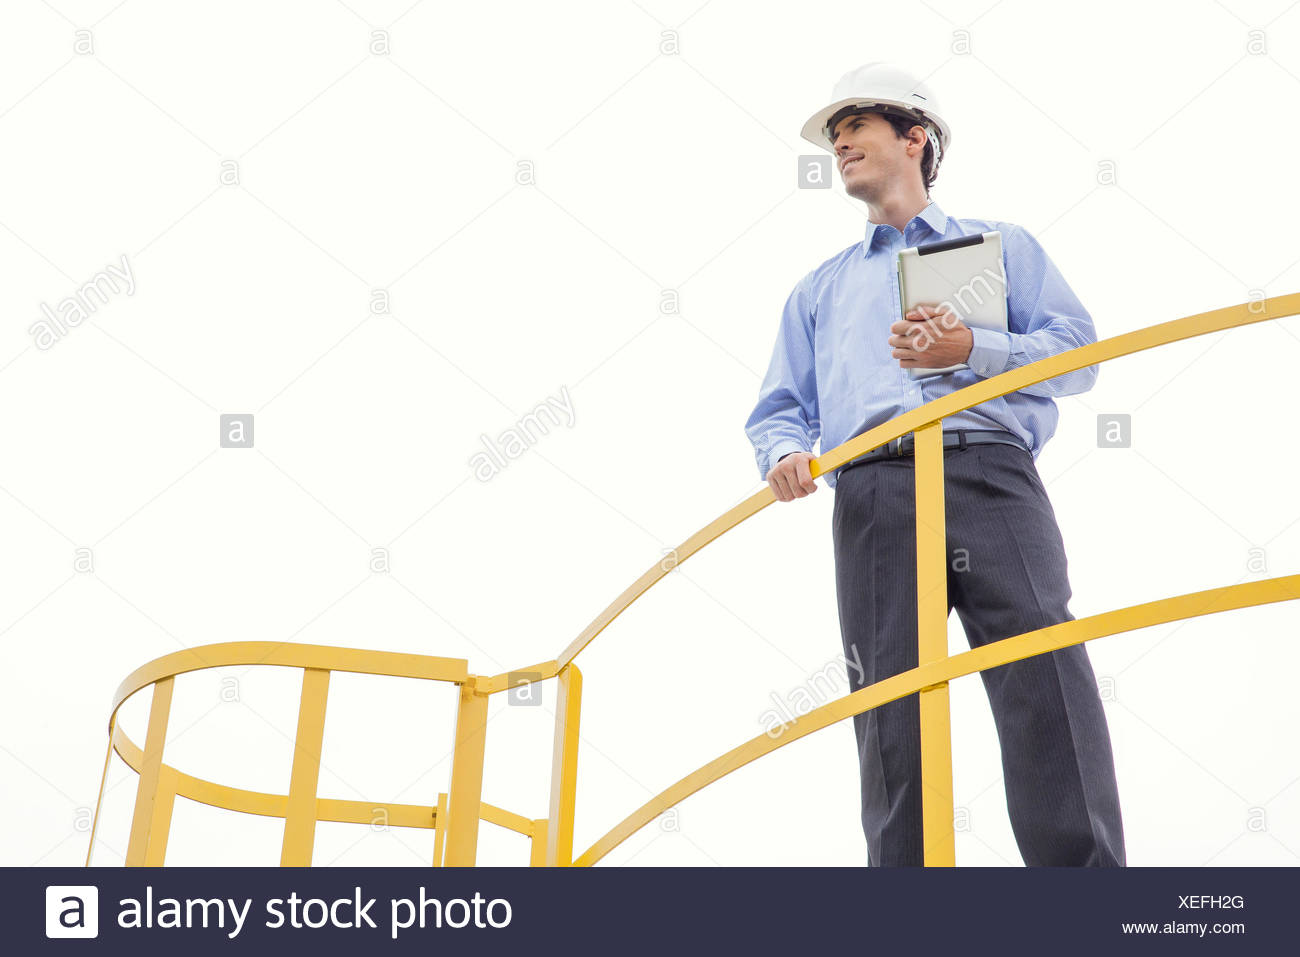 Engineer inspecting industrial site, low angle view - Stock Image